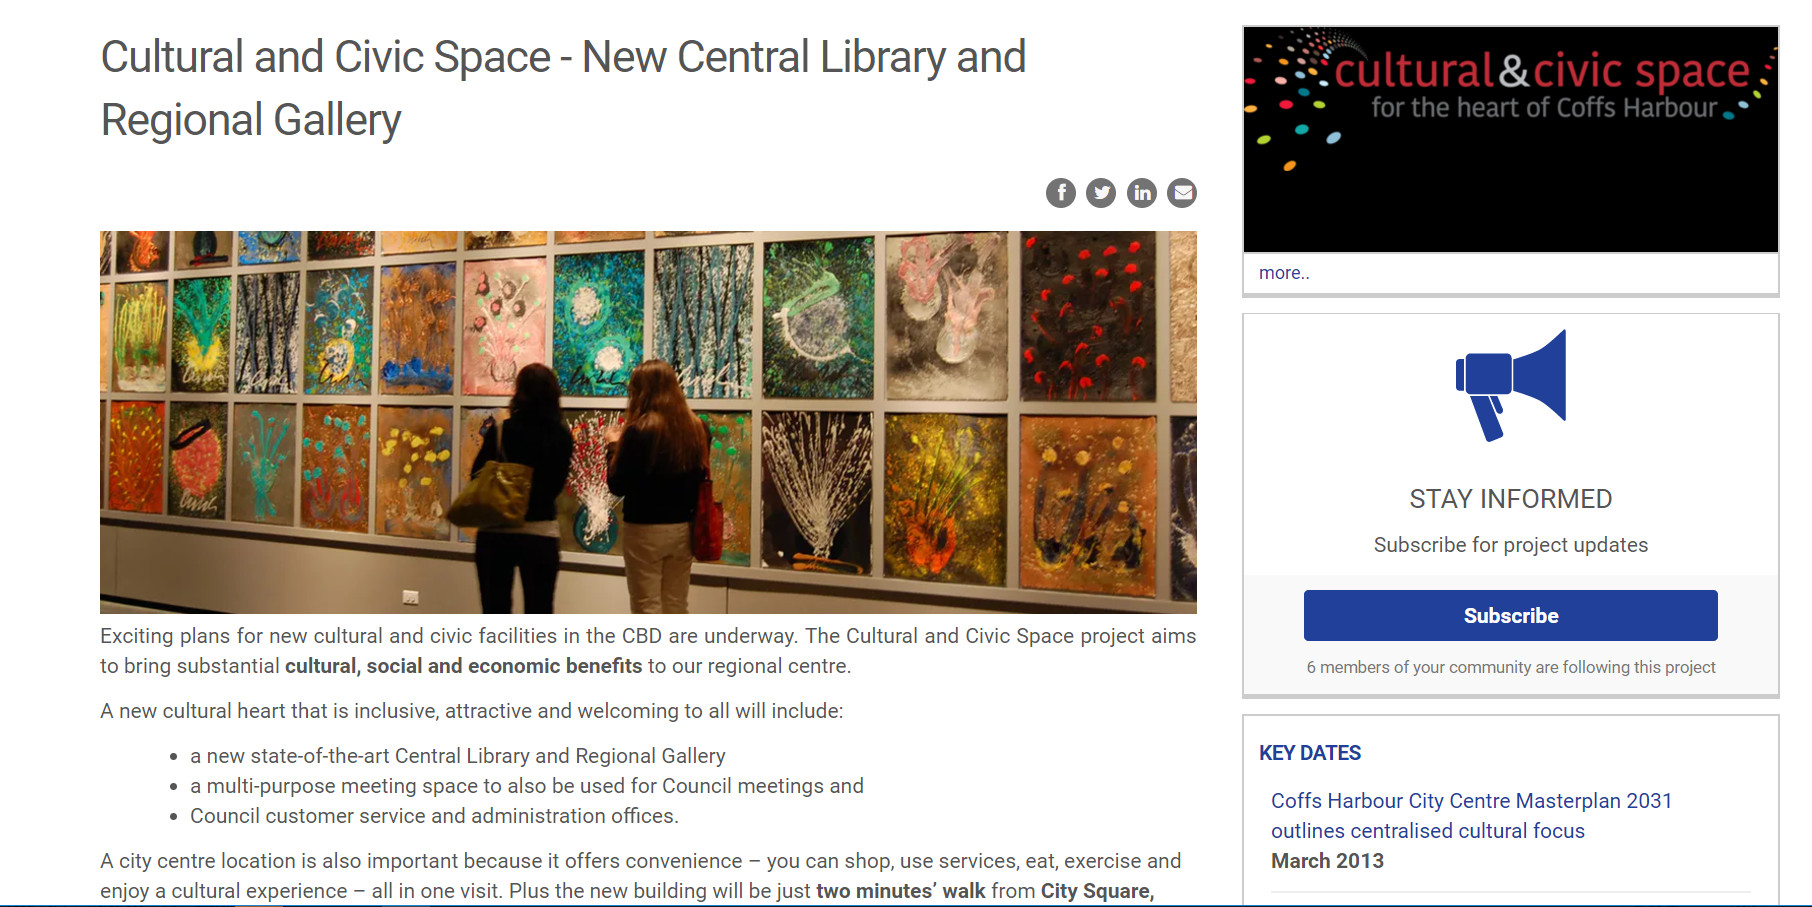 library-gallery project page screenshot